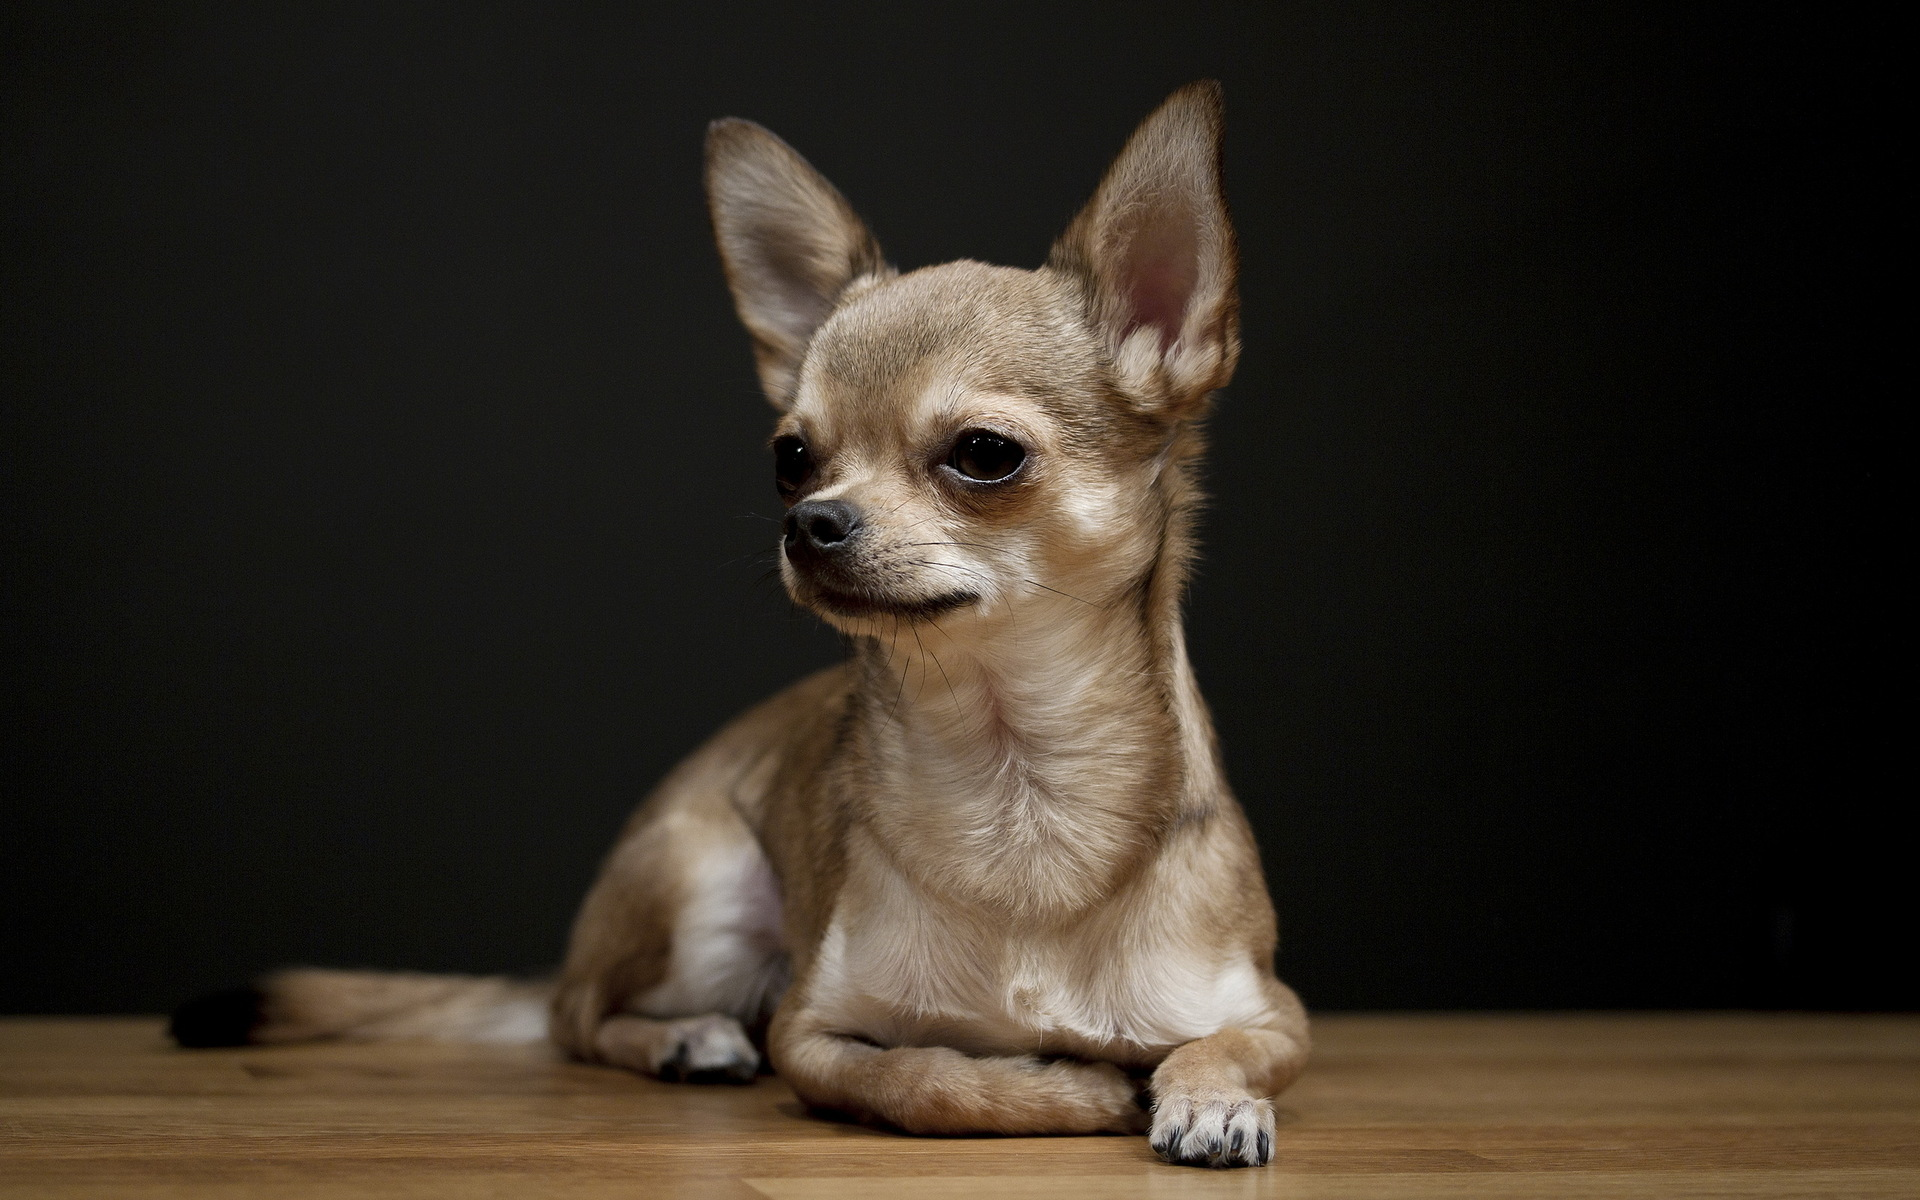 Chihuahua Dog: Chihuahua Chihuahua Dog Hd Backgrounds Breed